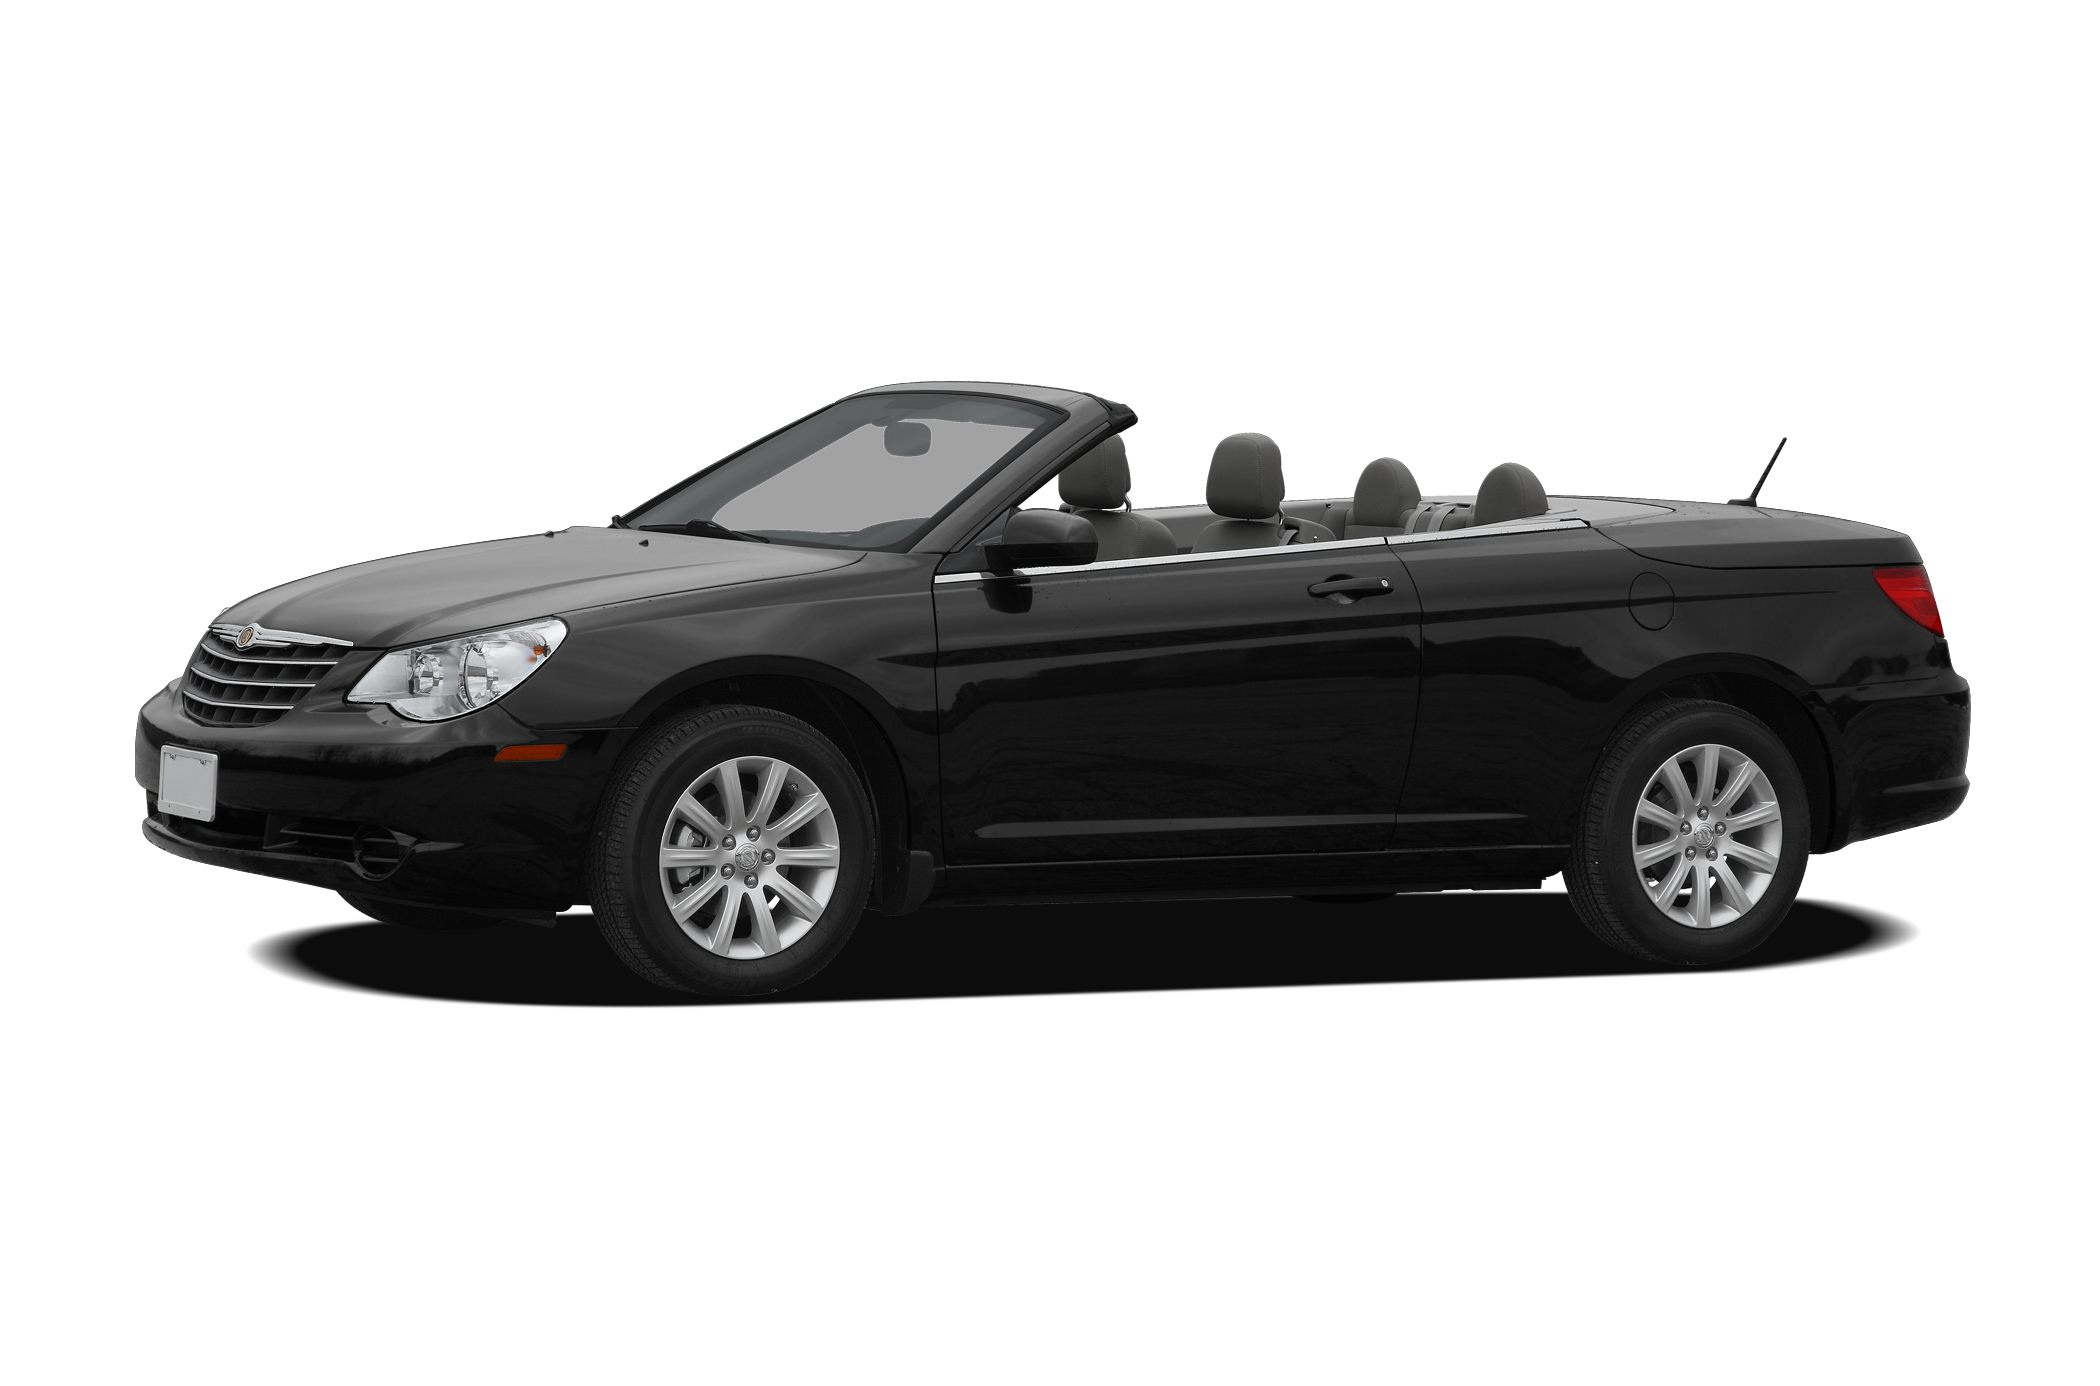 2009 Chrysler Sebring Touring Convertible for sale in Vienna for $13,704 with 49,645 miles